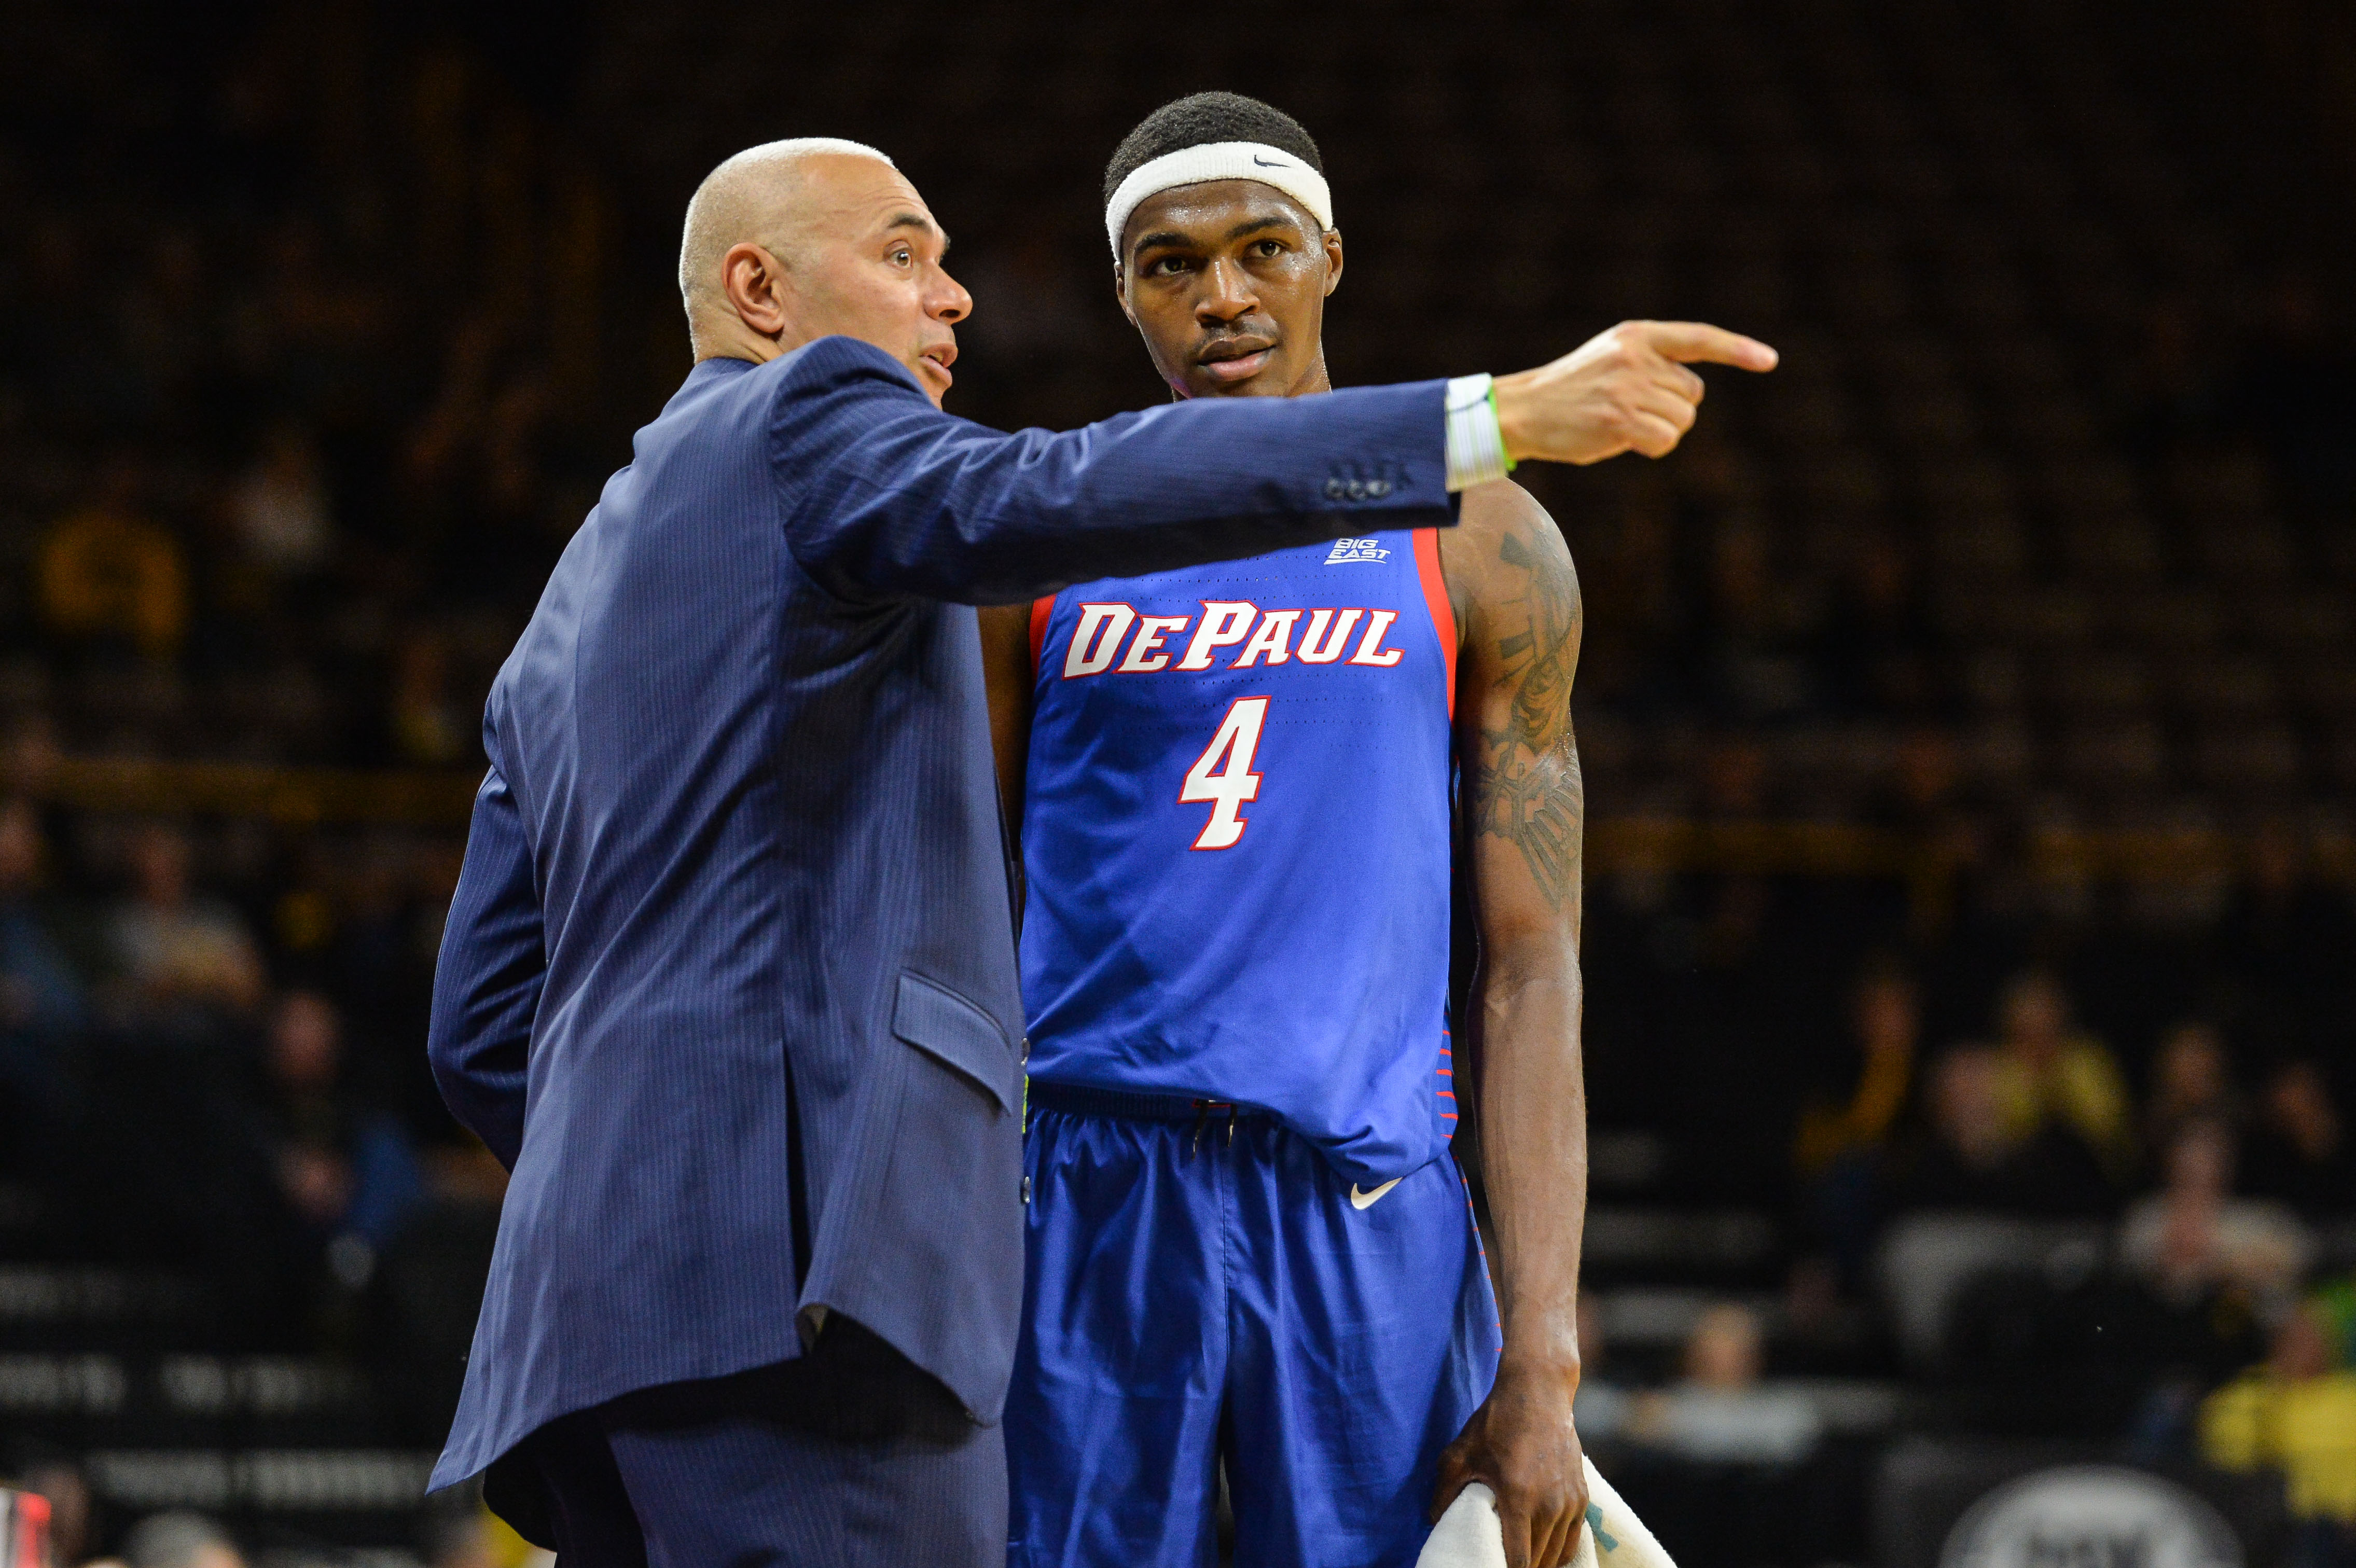 Nov 11, 2019; Iowa City, IA, USA; DePaul Blue Demons head coach Dave Leitao talks with forward Paul Reed (4) during the second half against the Iowa Hawkeyes at Carver-Hawkeye Arena.